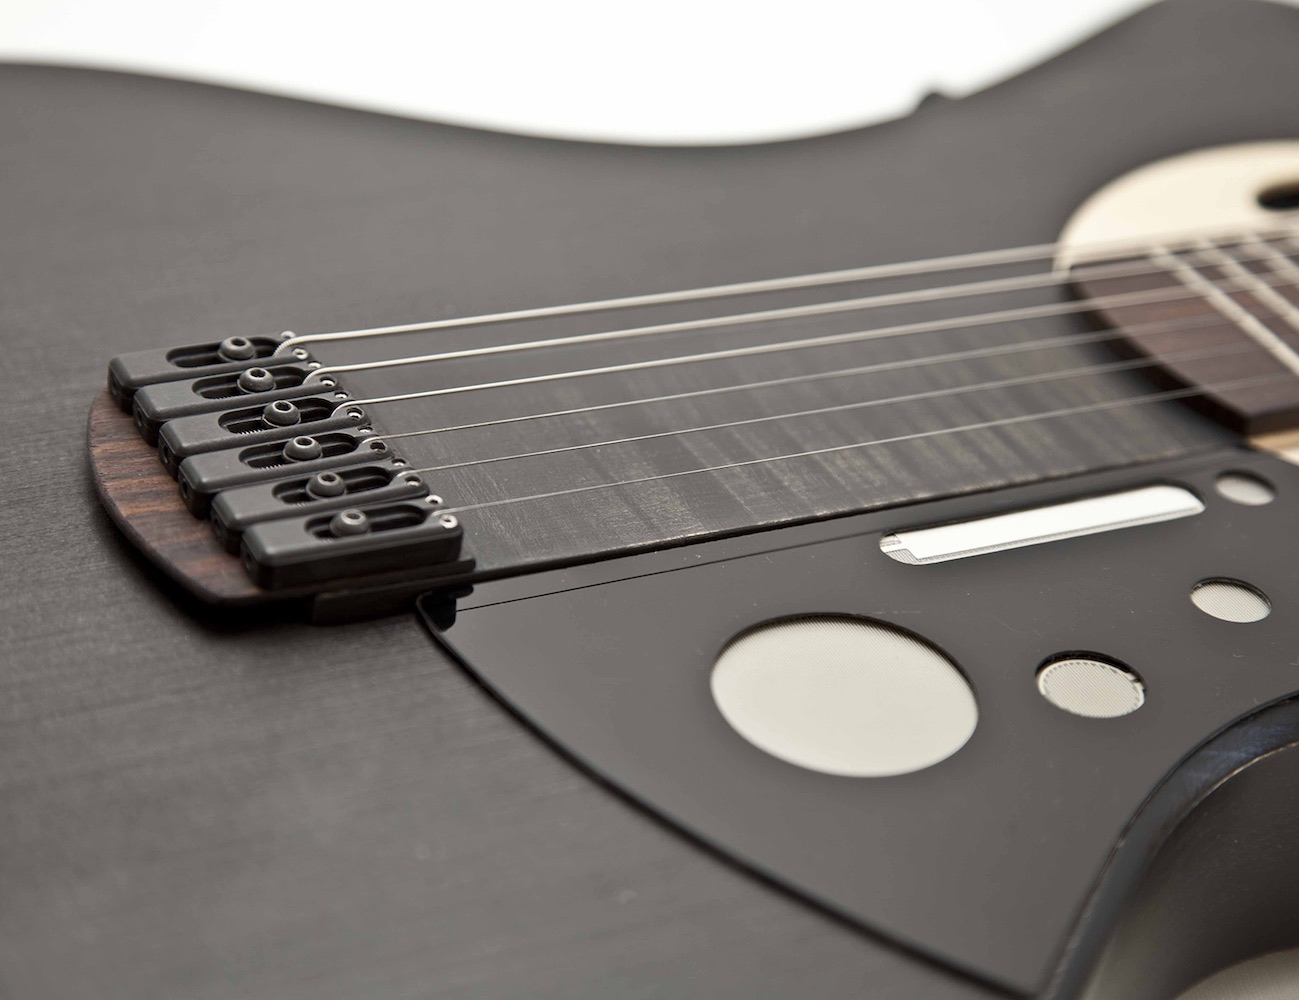 sensus-smart-guitar-by-mind-music-labs-06